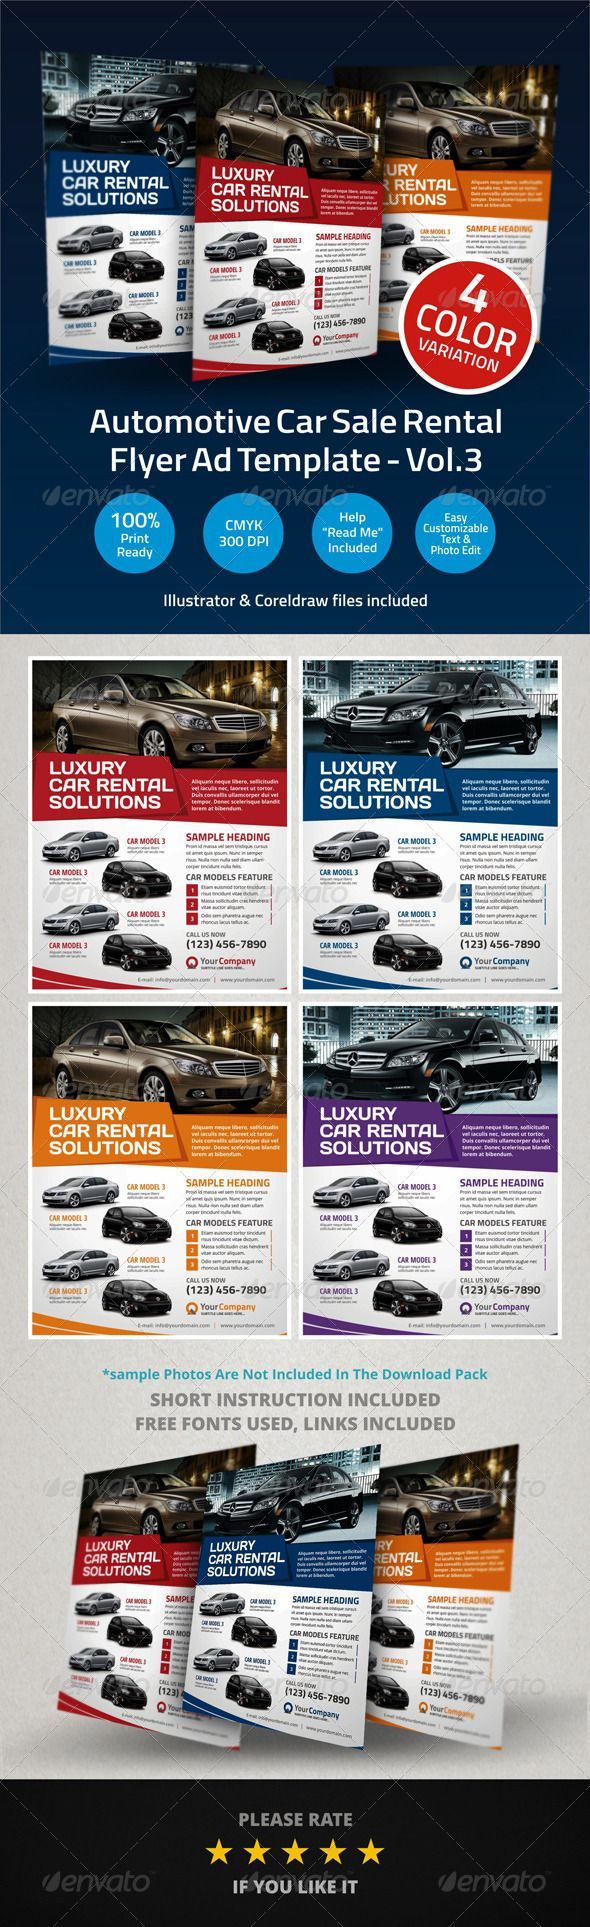 12 best images about My Car Flyers – Car Ad Template